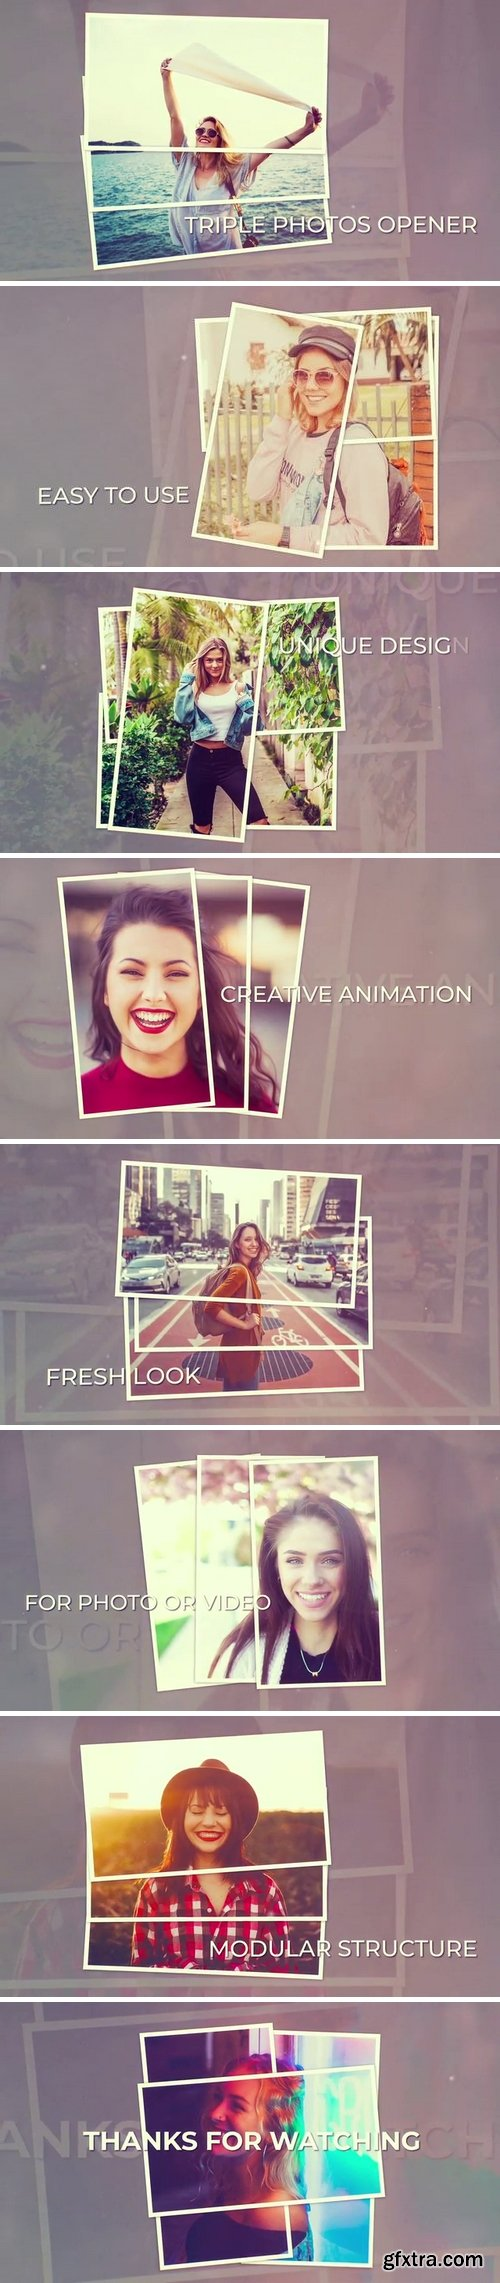 MotionArray - Triple Photos Opener After Effects Templates 141310